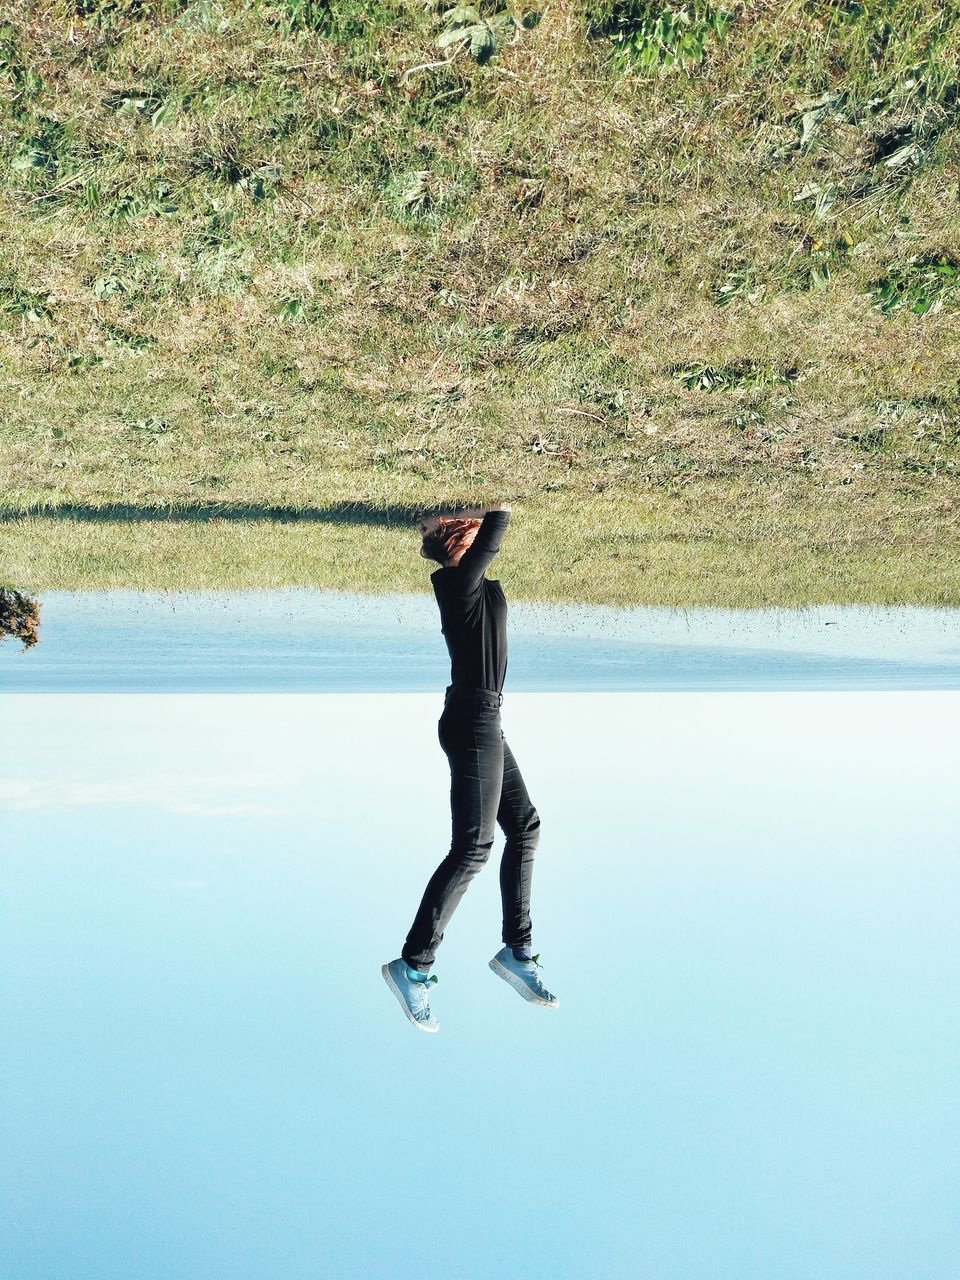 Upside Down Image Of Woman Doing Handstand At Seashore